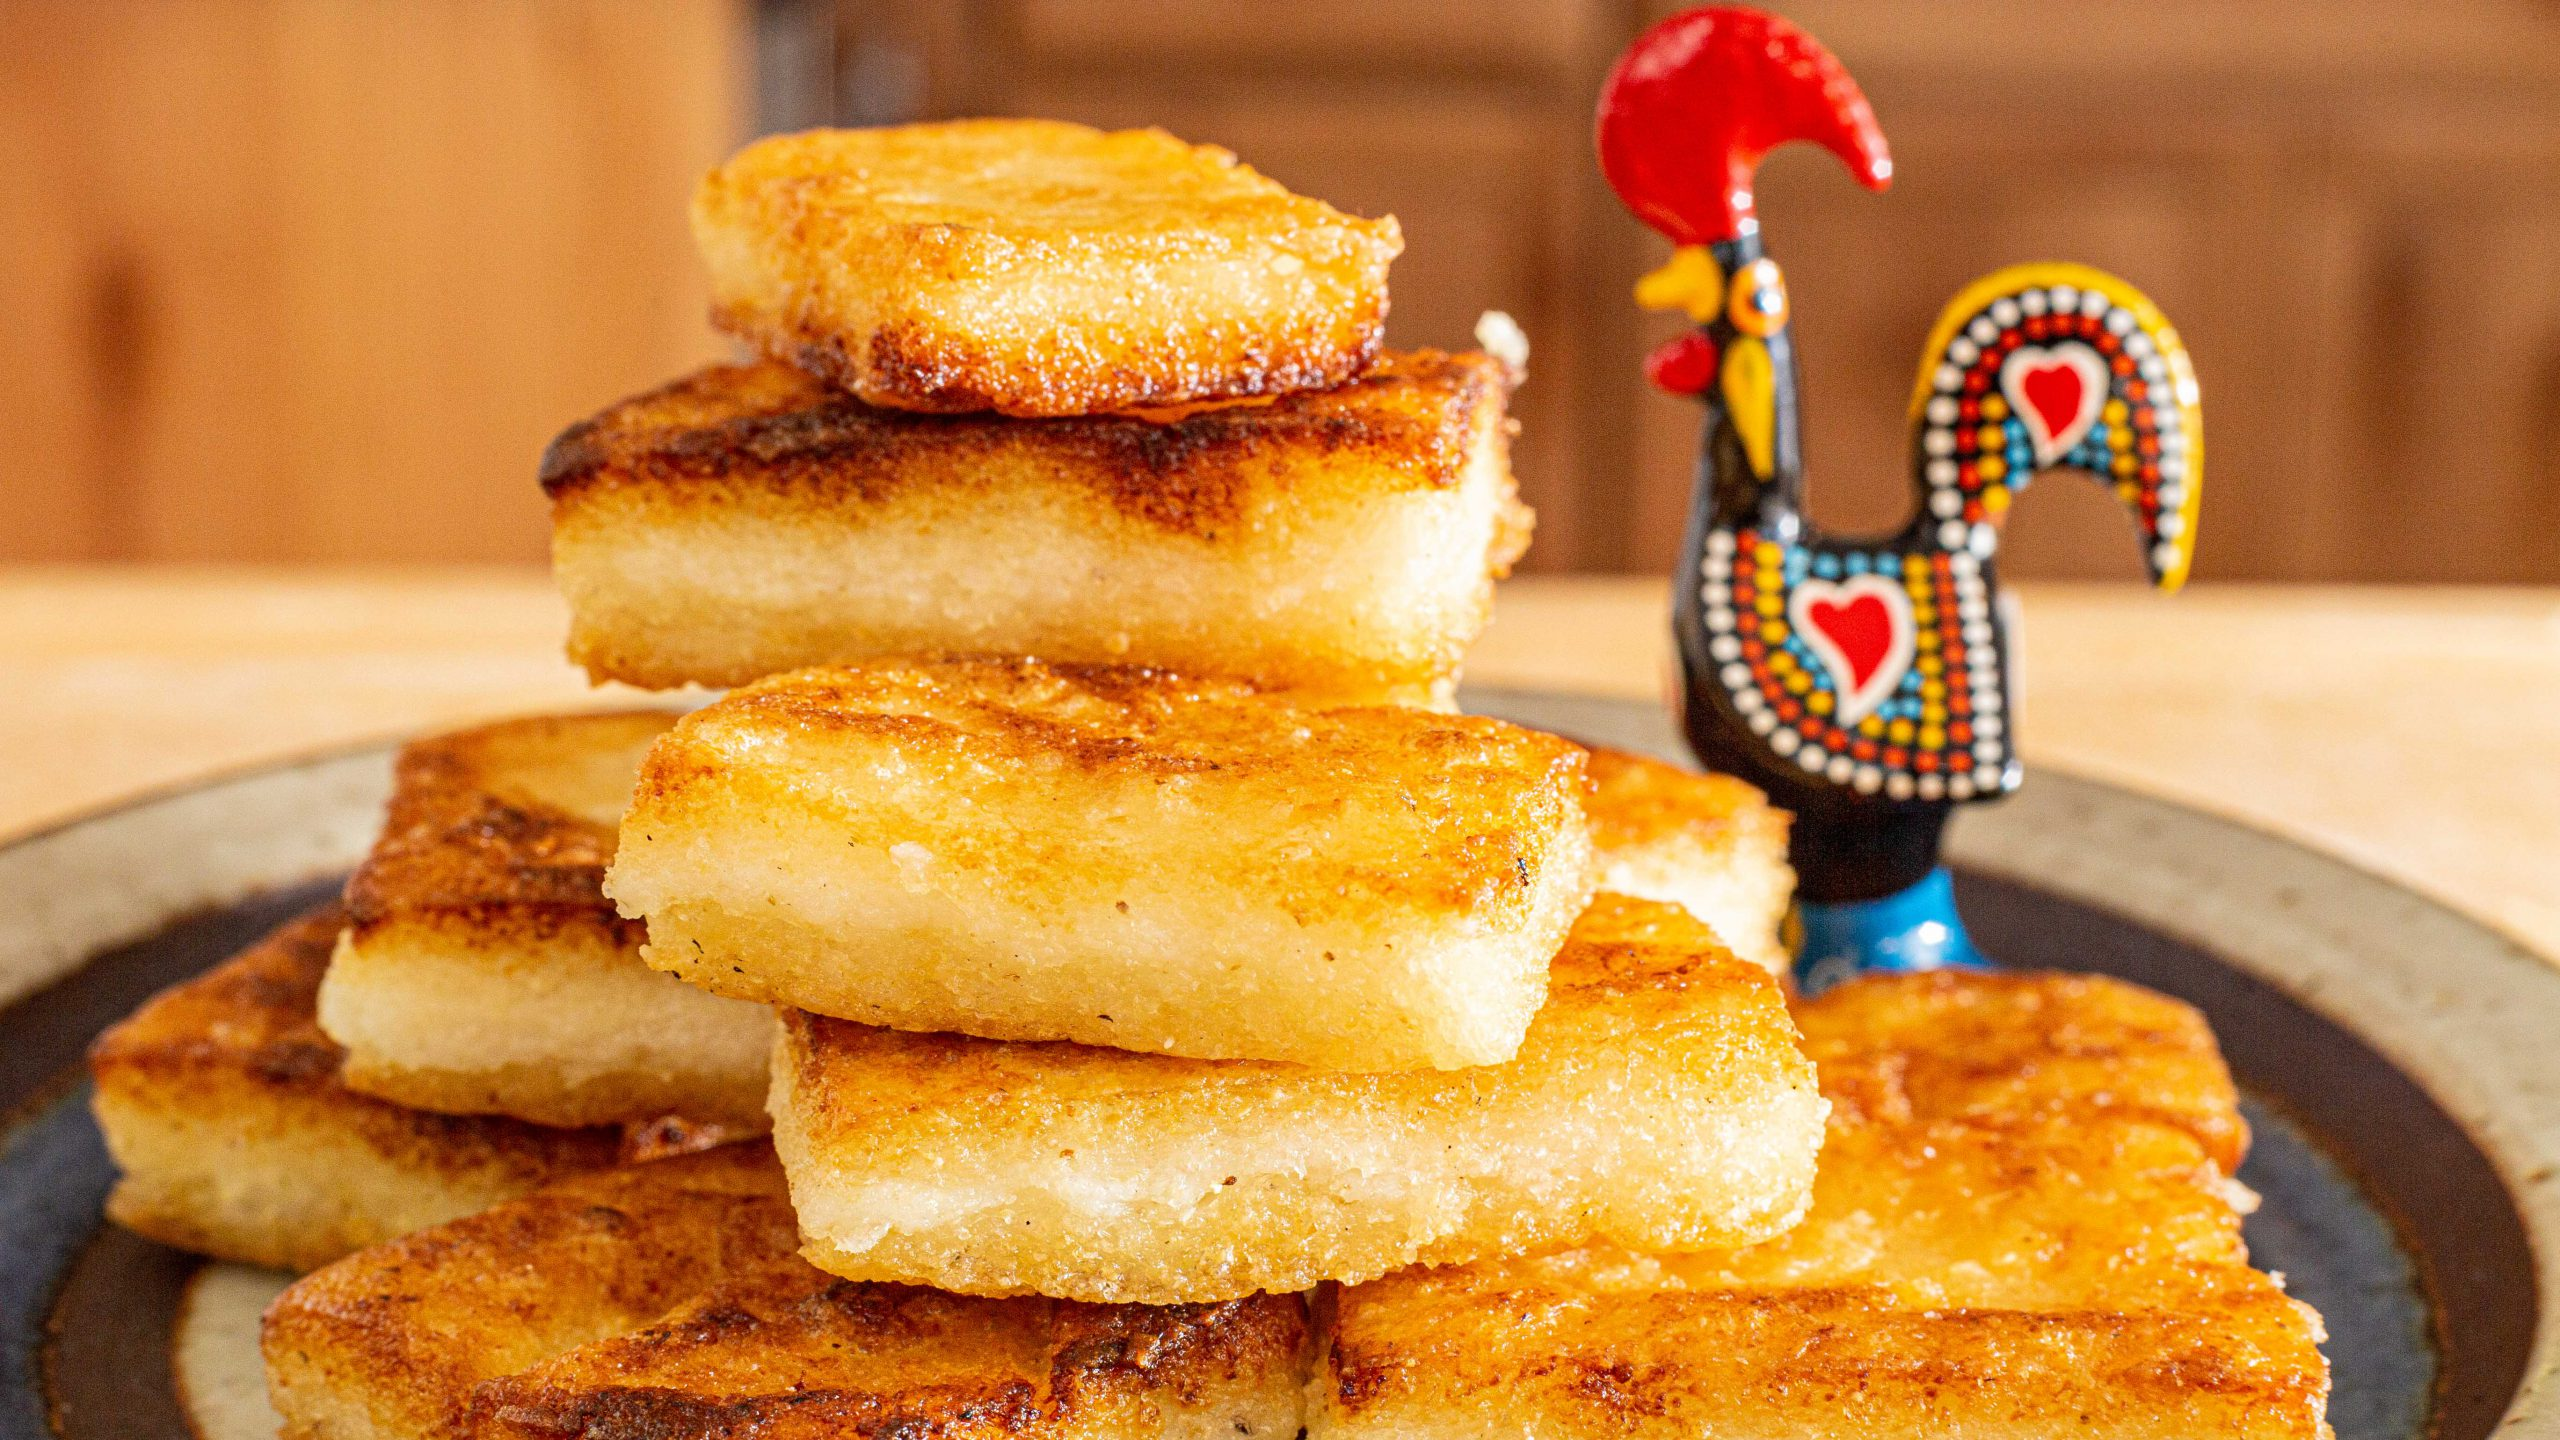 Portuguese Milho Frito, or fried cornmeal polenta, cut into small rectangles stacked on ceramic plate with small Portuguese rooster figurine